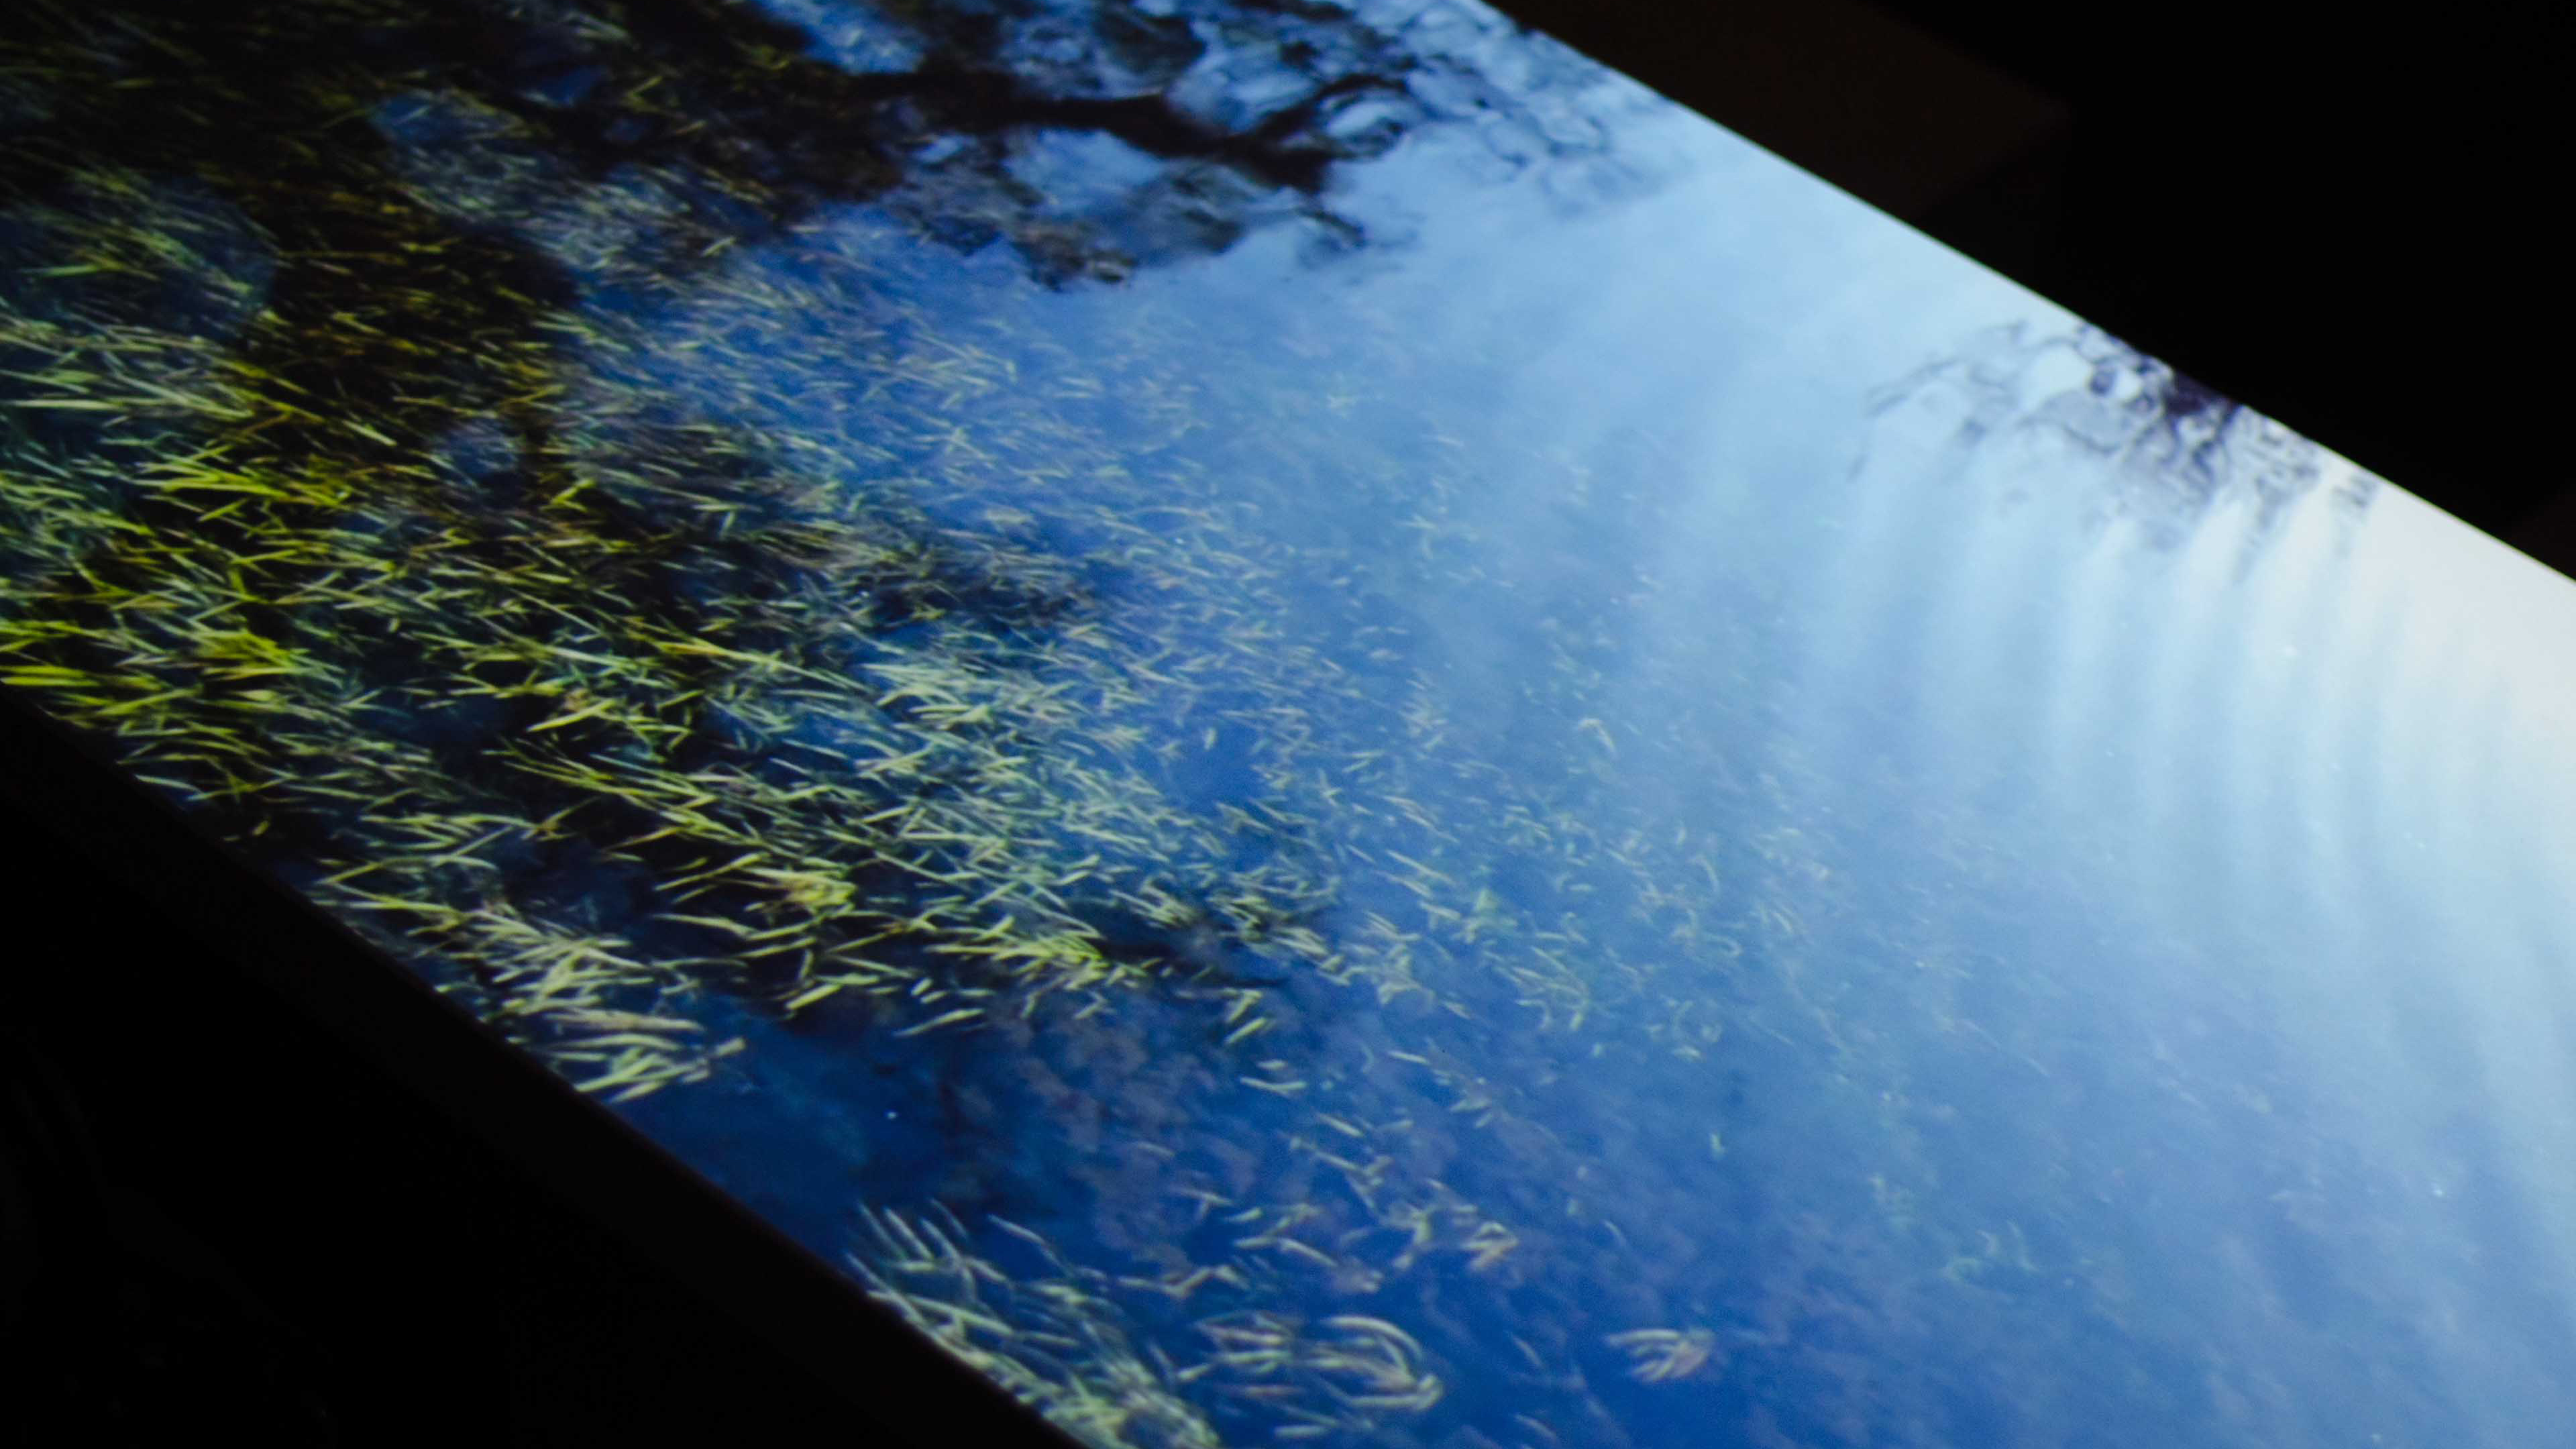 Water scape projected on a table